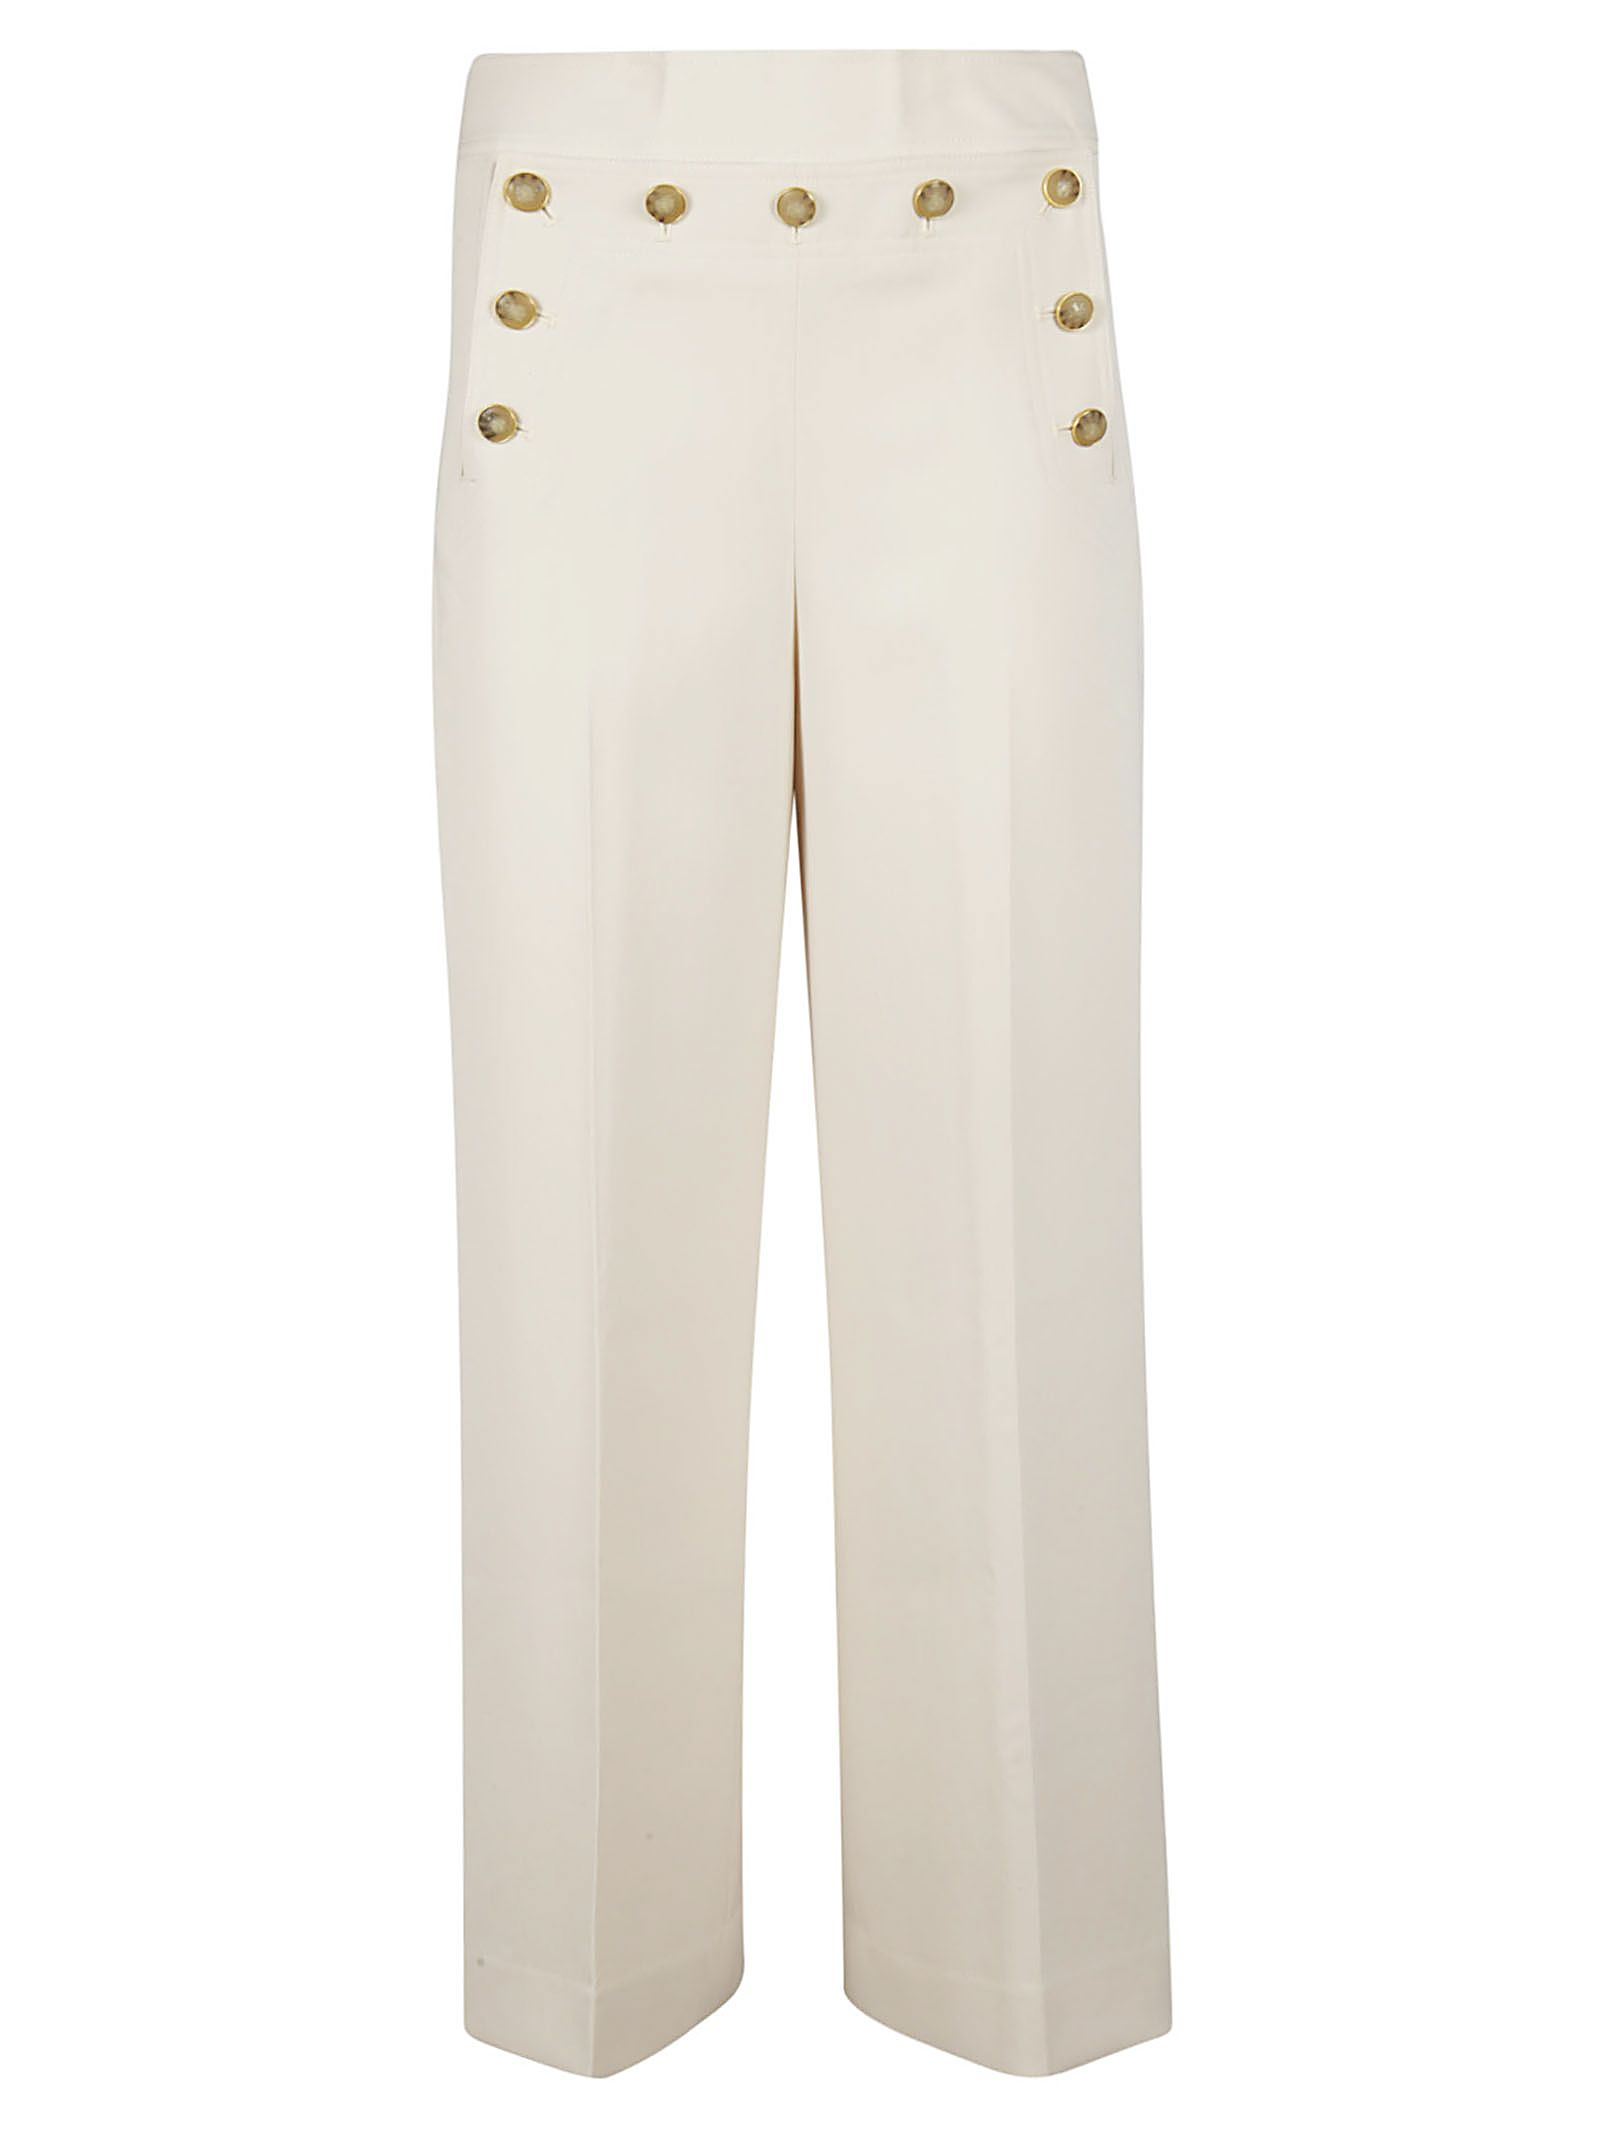 Tory Burch Button Embellished Trousers